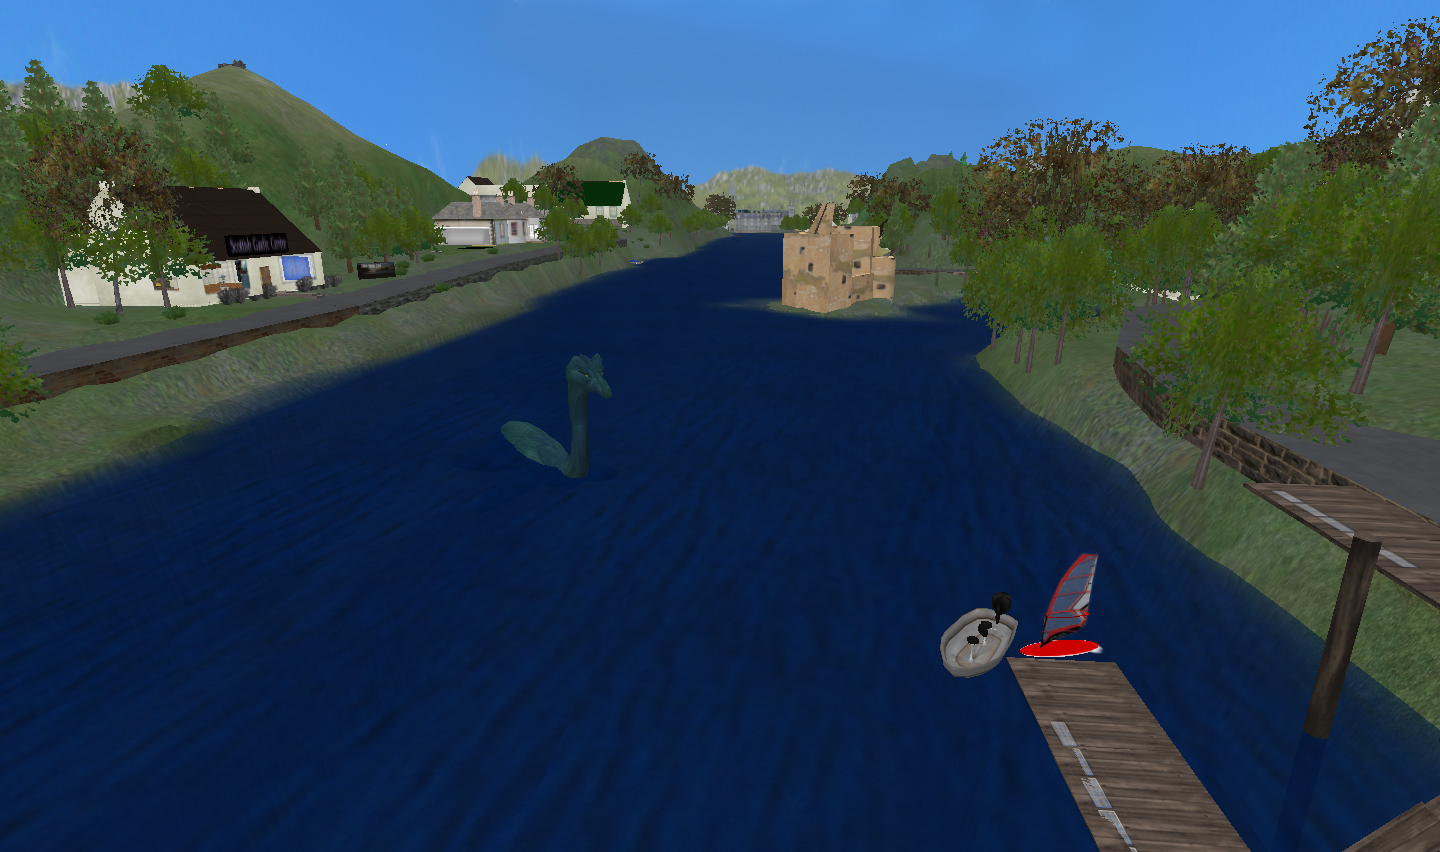 The Urquhart Region of the Virtual Scottish Highlands